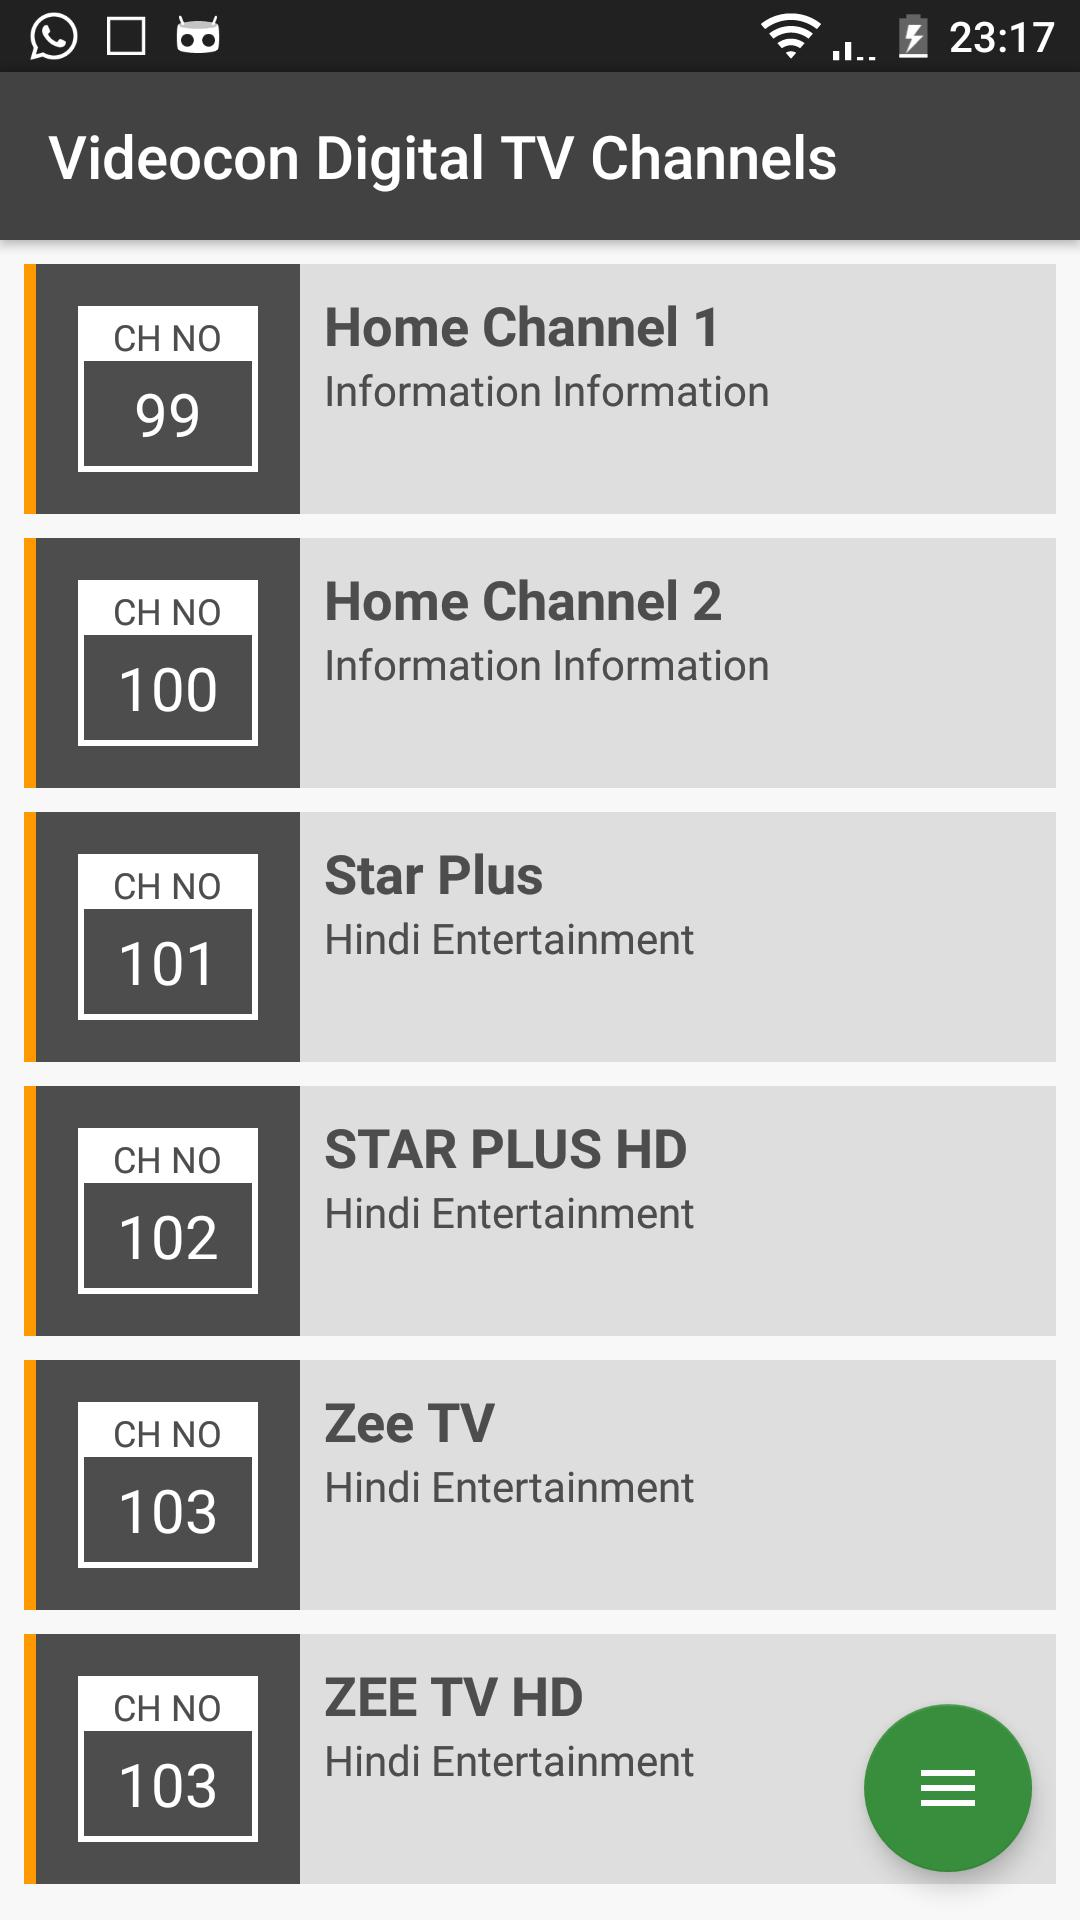 Videocon Digital TV Channels for Android - APK Download